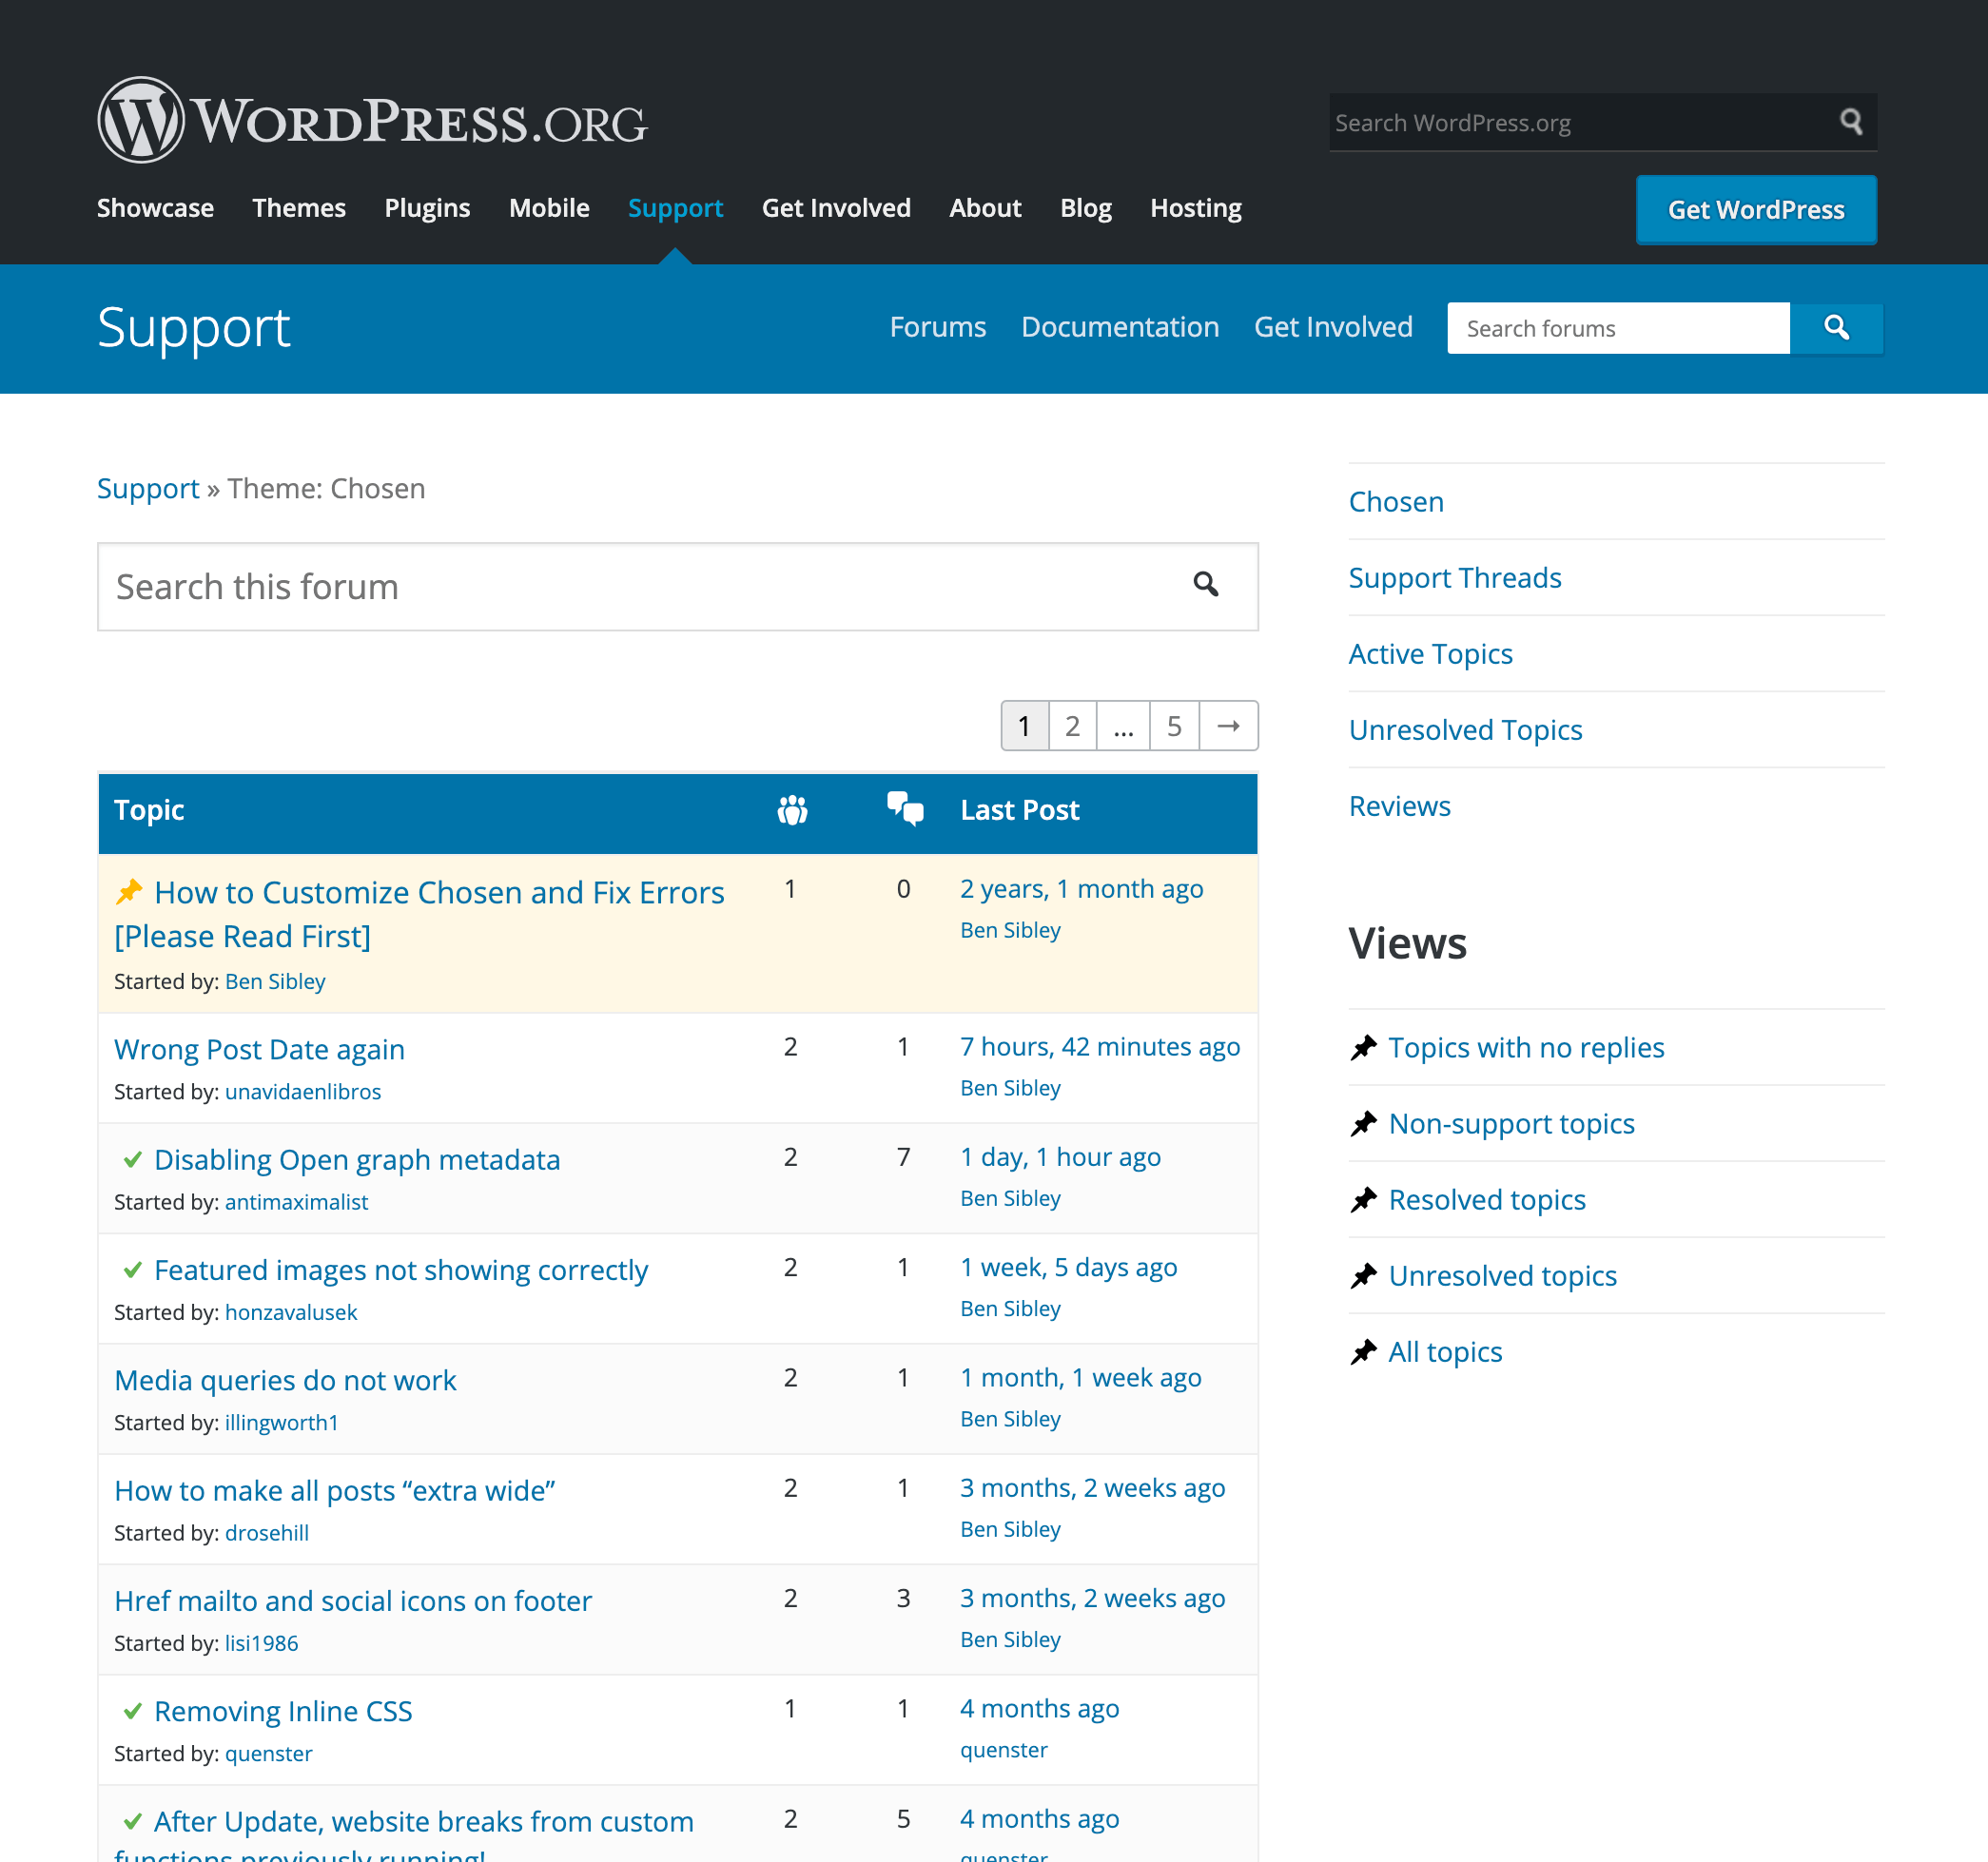 WordPress supportforums